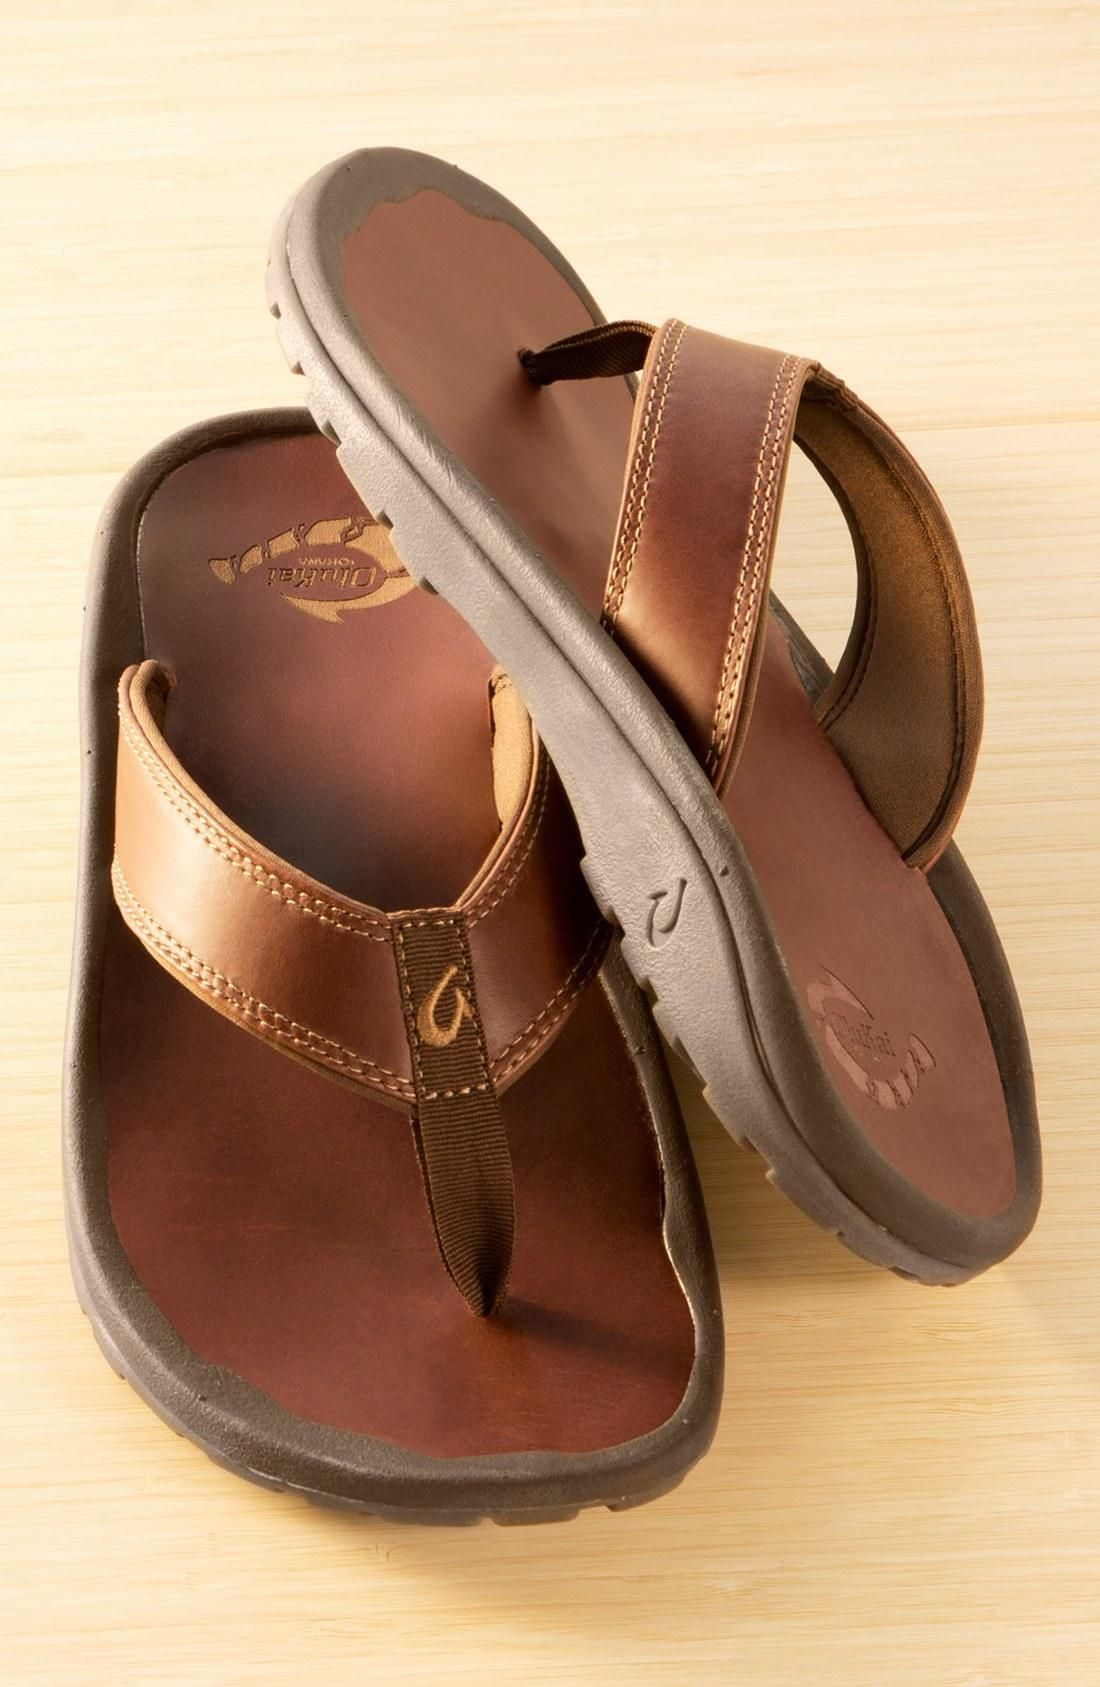 c073b2003fb39 Leather flip flops for dad!